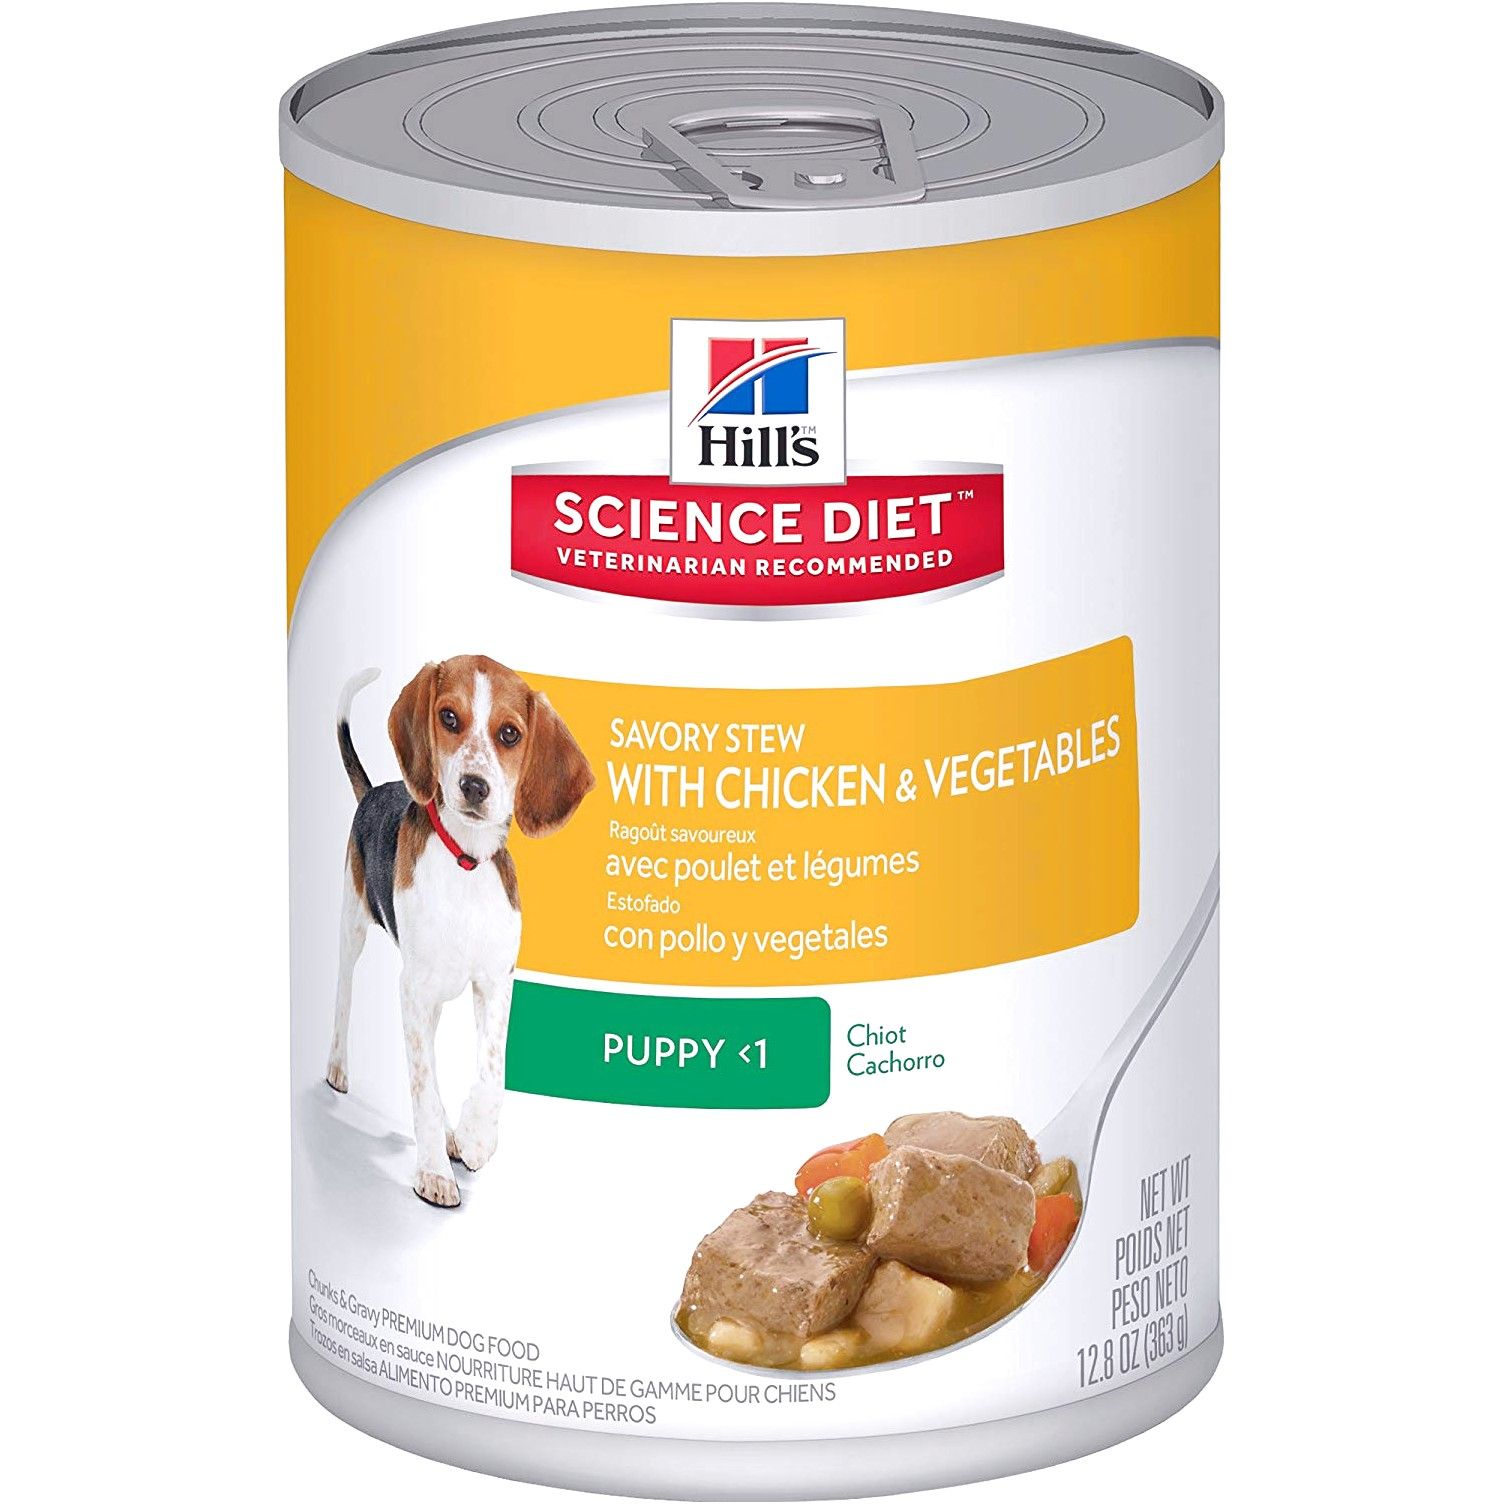 What Is The Best Dog Food For Puppies